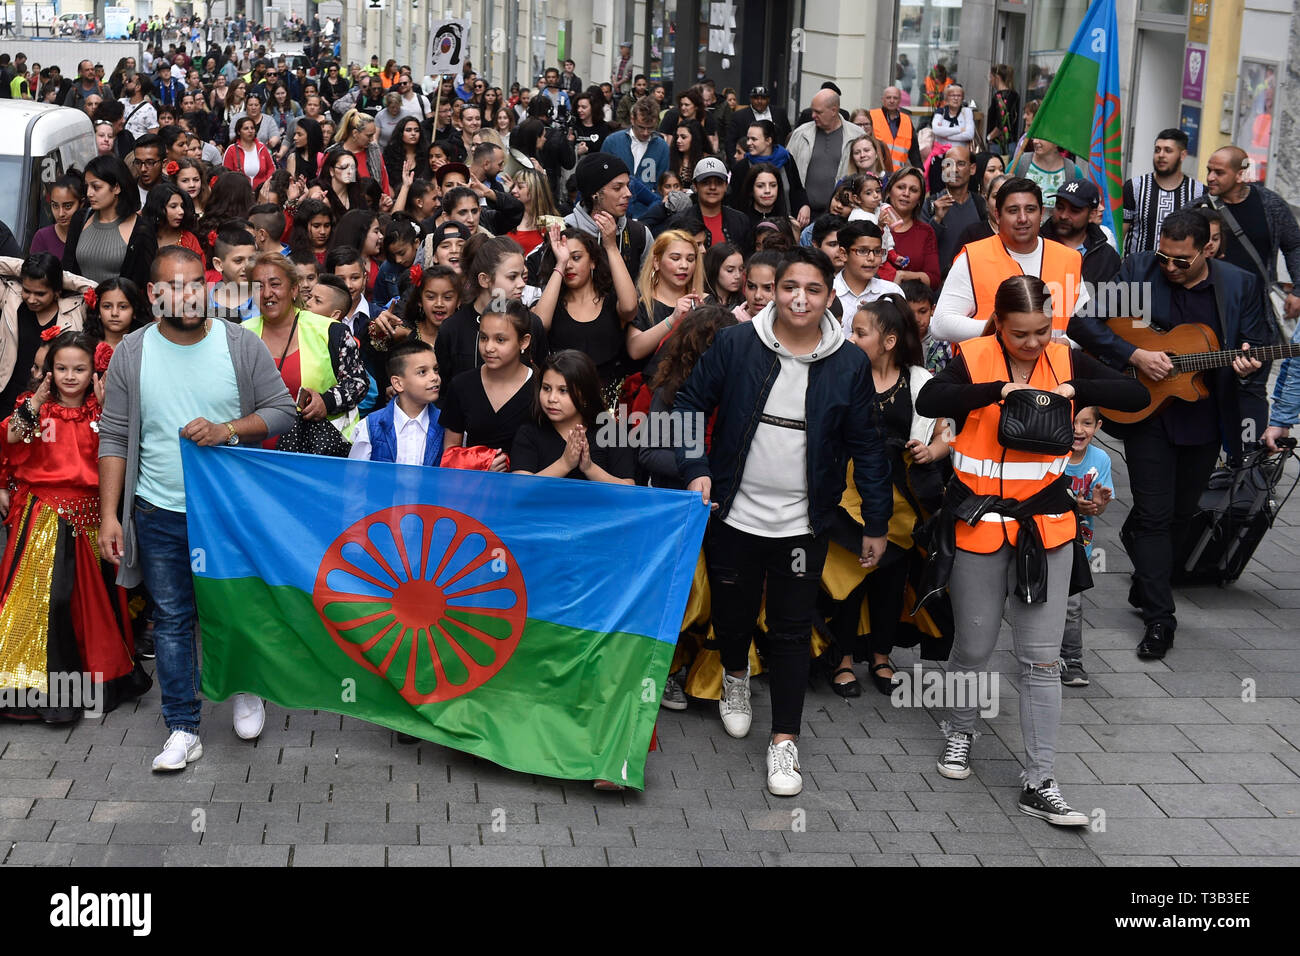 Brno, Czech Republic. 08th Apr, 2019. People attend Roma Pride march organised within Week of Roma Culture, on International Romani Day, April 8, 2019, in Brno, Czech Republic. Credit: Vaclav Salek/CTK Photo/Alamy Live News - Stock Image